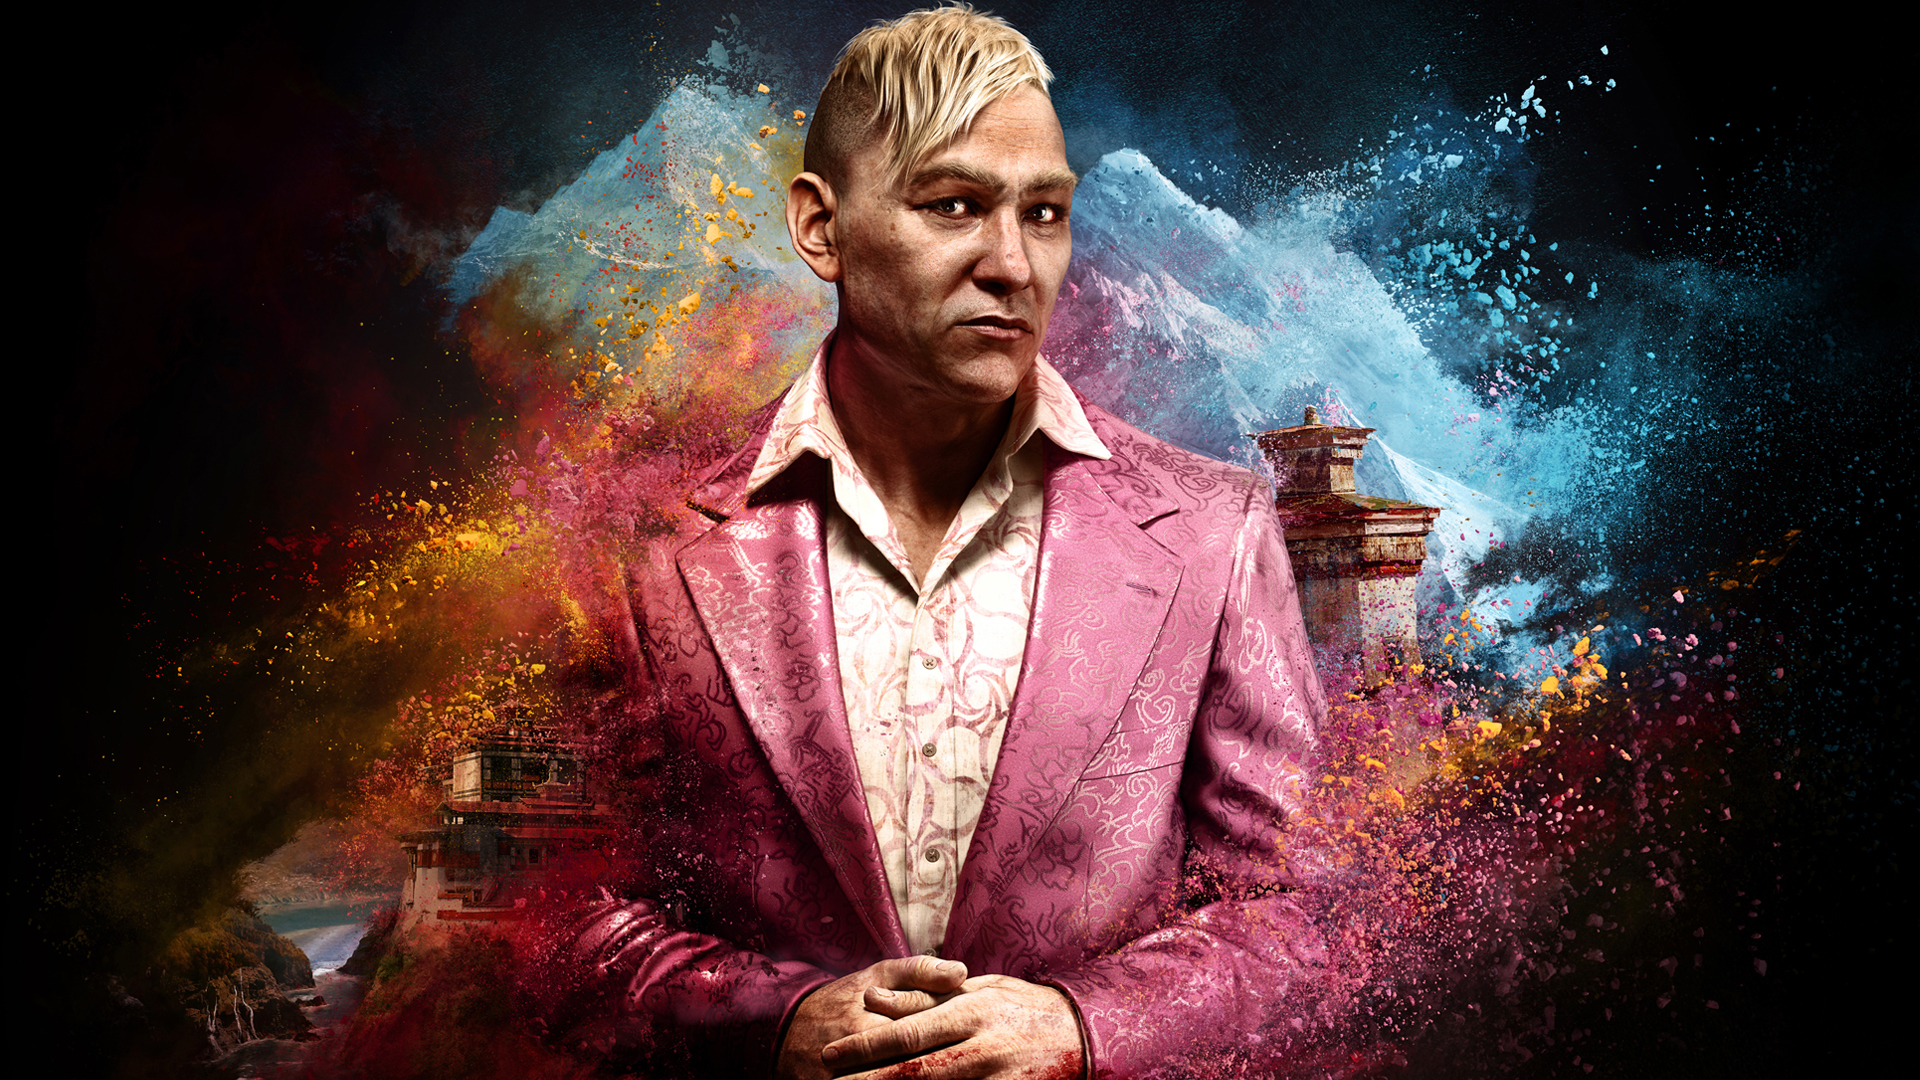 Free Download Far Cry 4 Wallpaper Backgrounds 9040 Wallpaper Cool